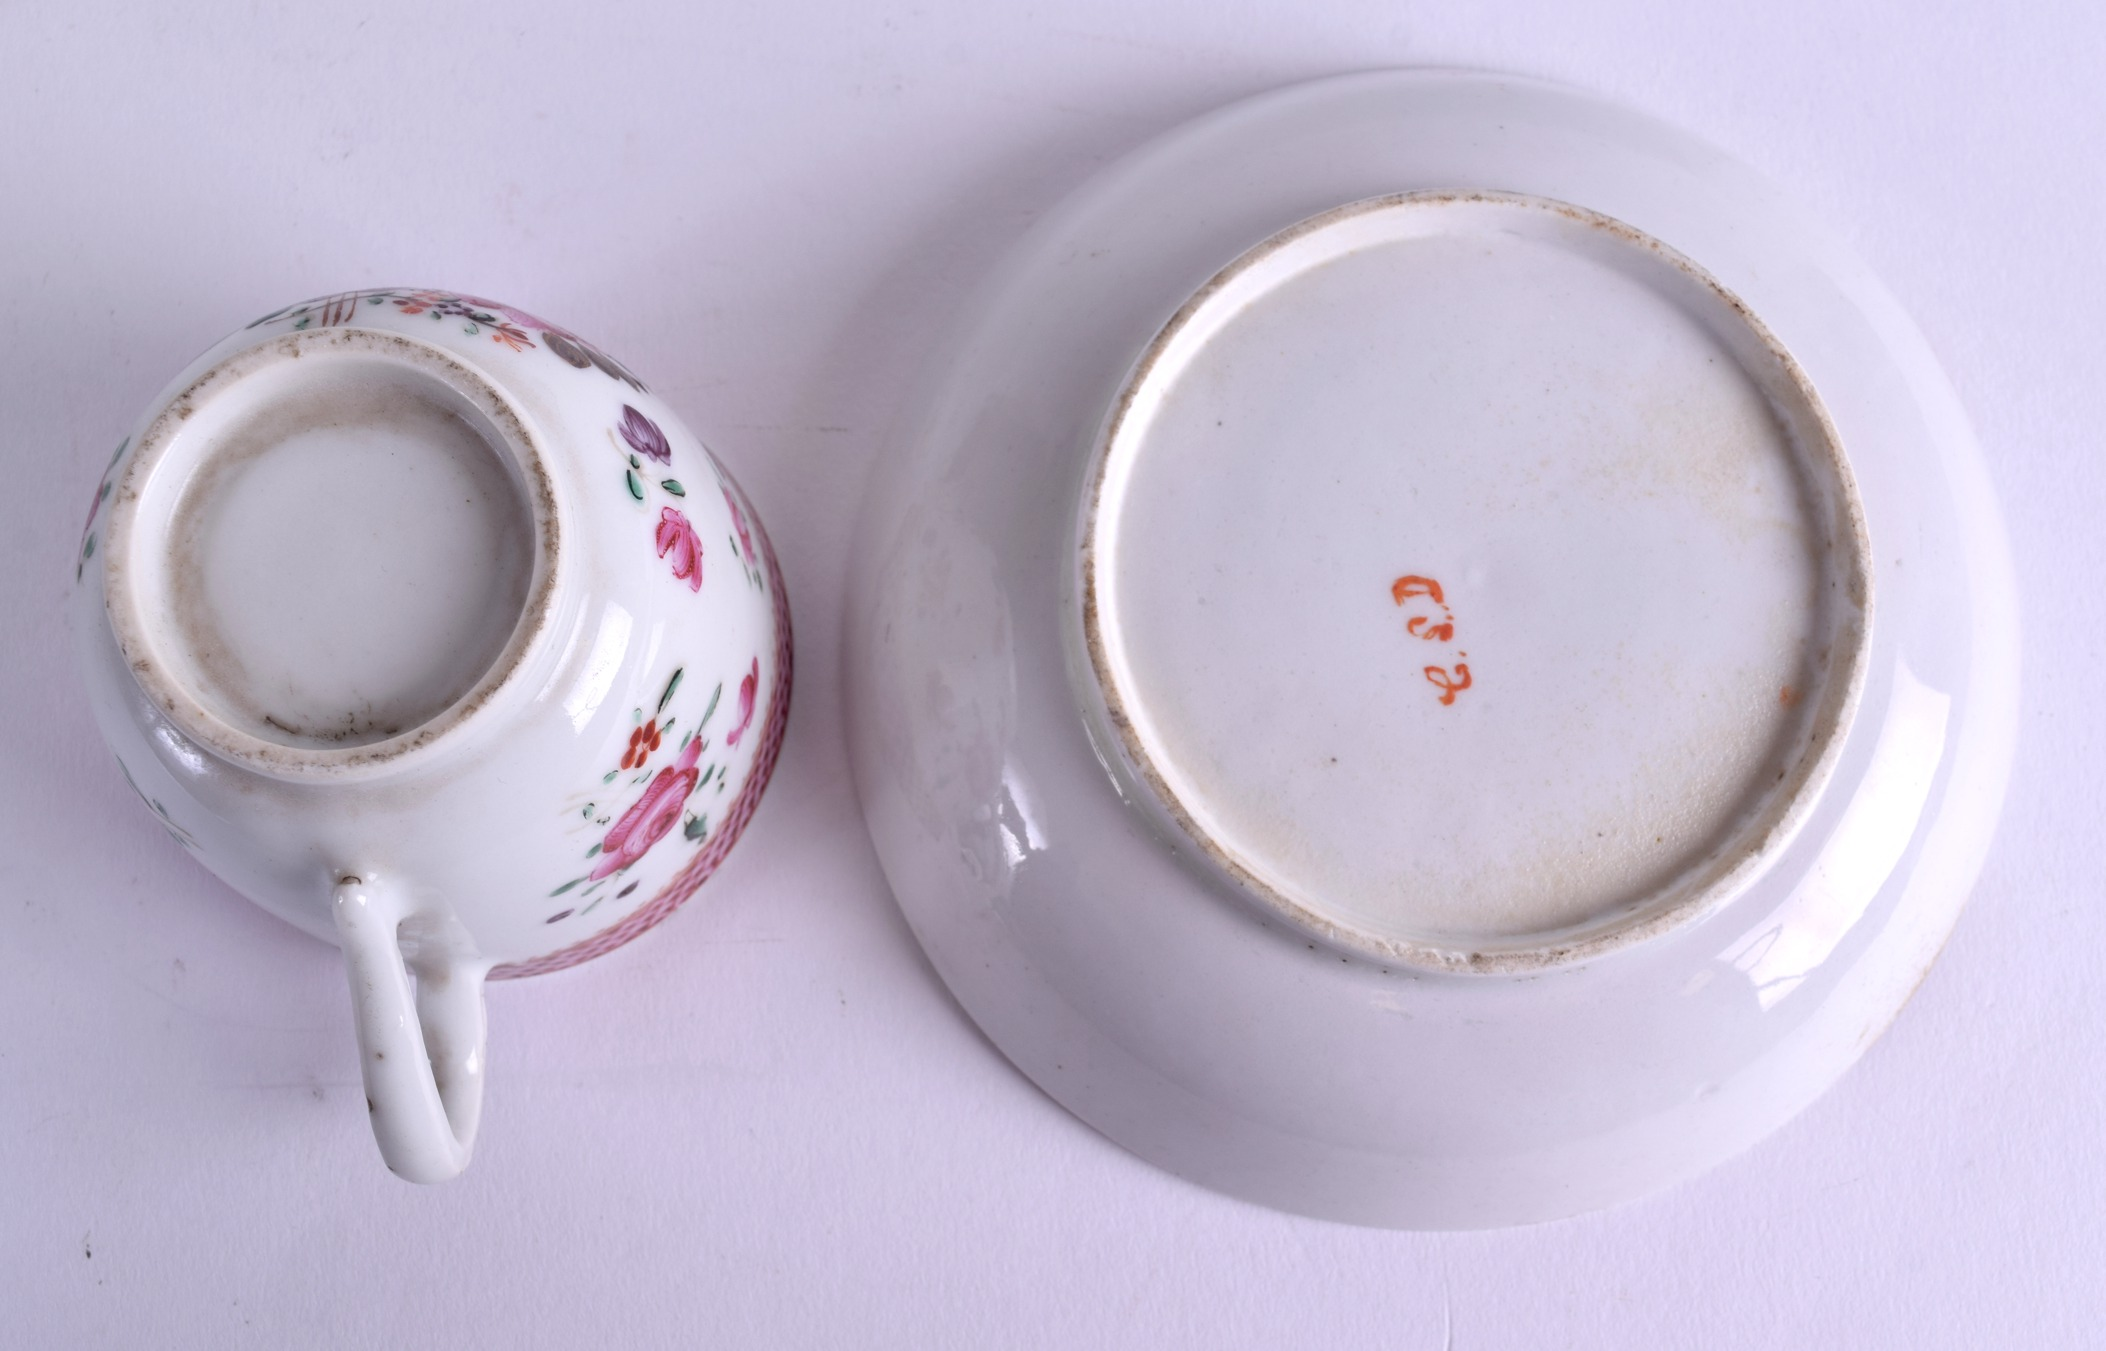 Lot 88 - AN 18TH CENTURY ENGLISH PORCELAIN COFFEE CUP Probably Lowestoft, together with a similar saucer,